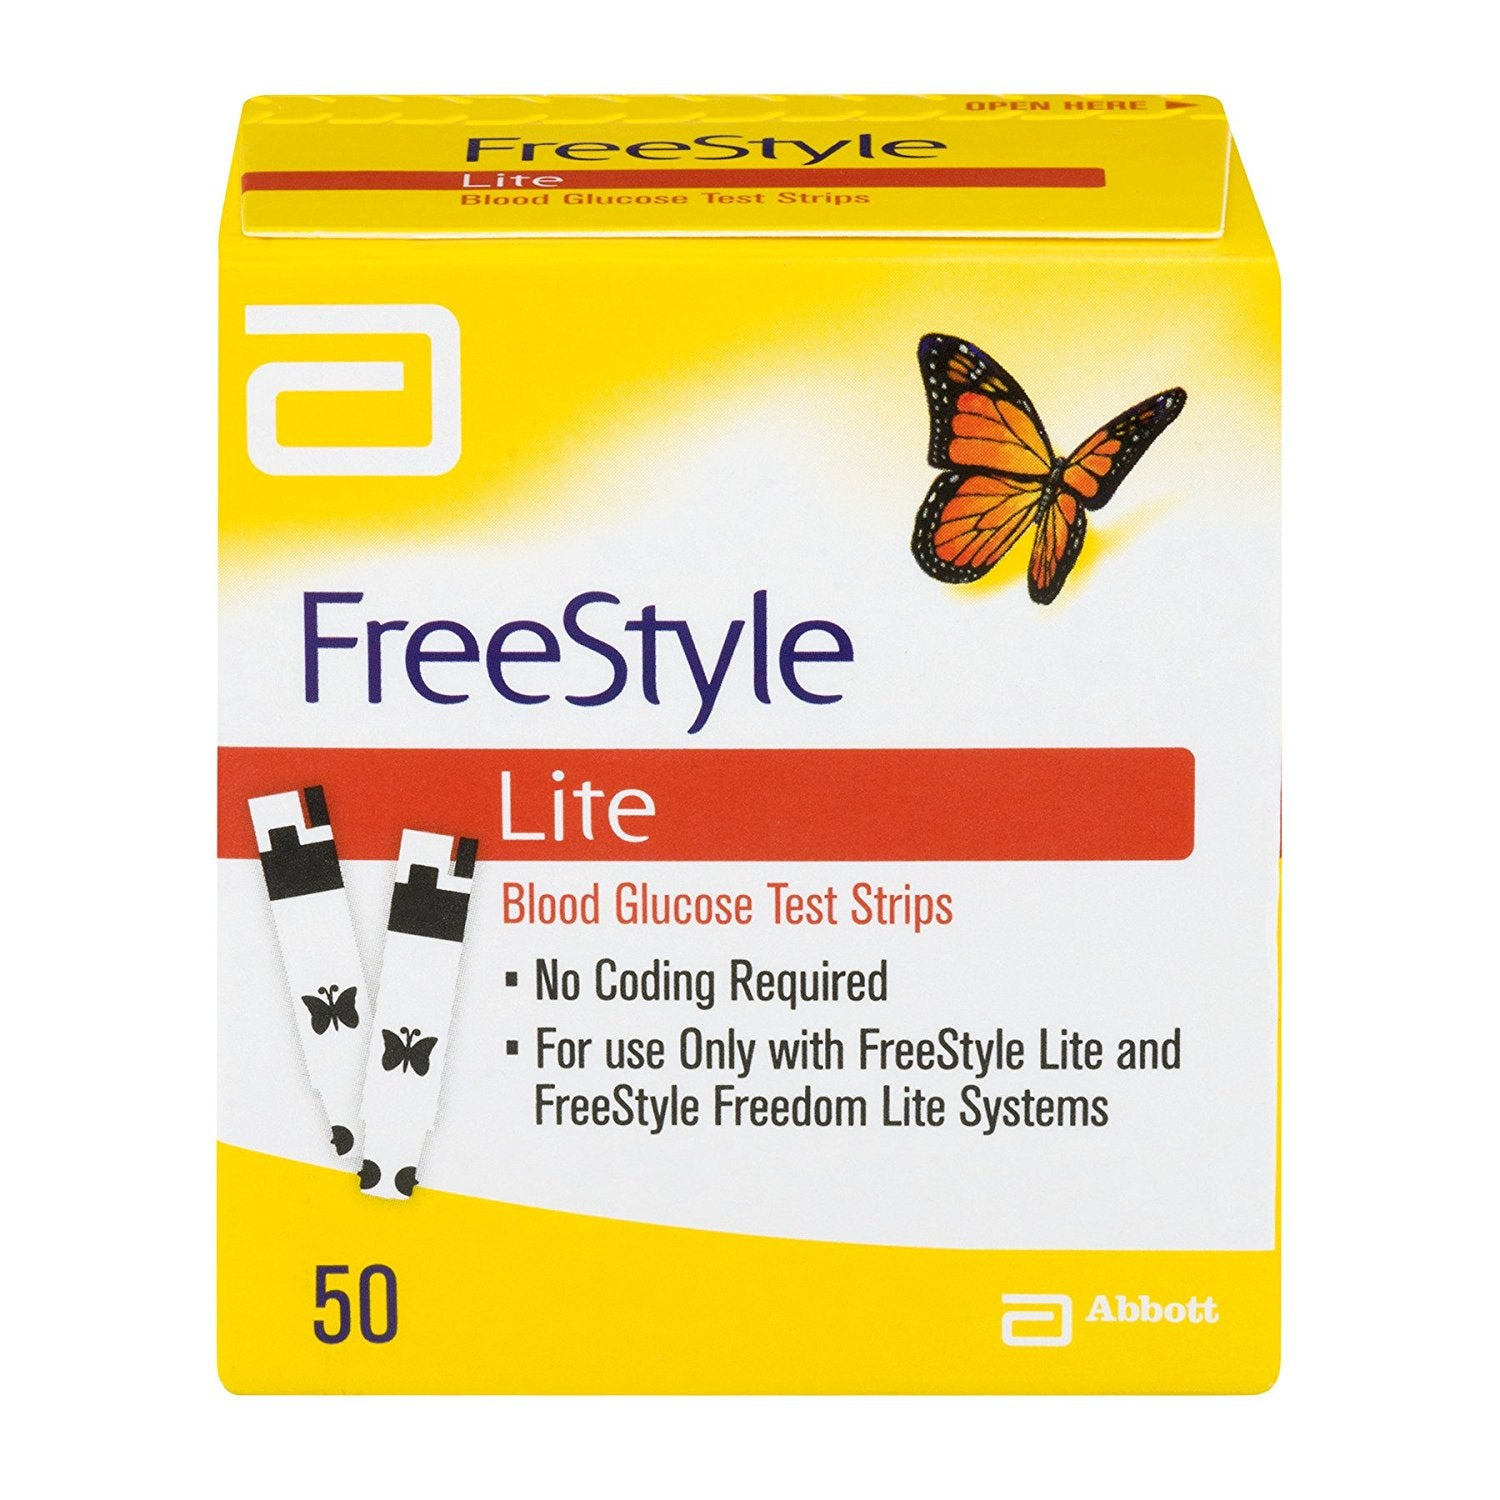 1 Per Day (50 FreeStyle Lite Strips)